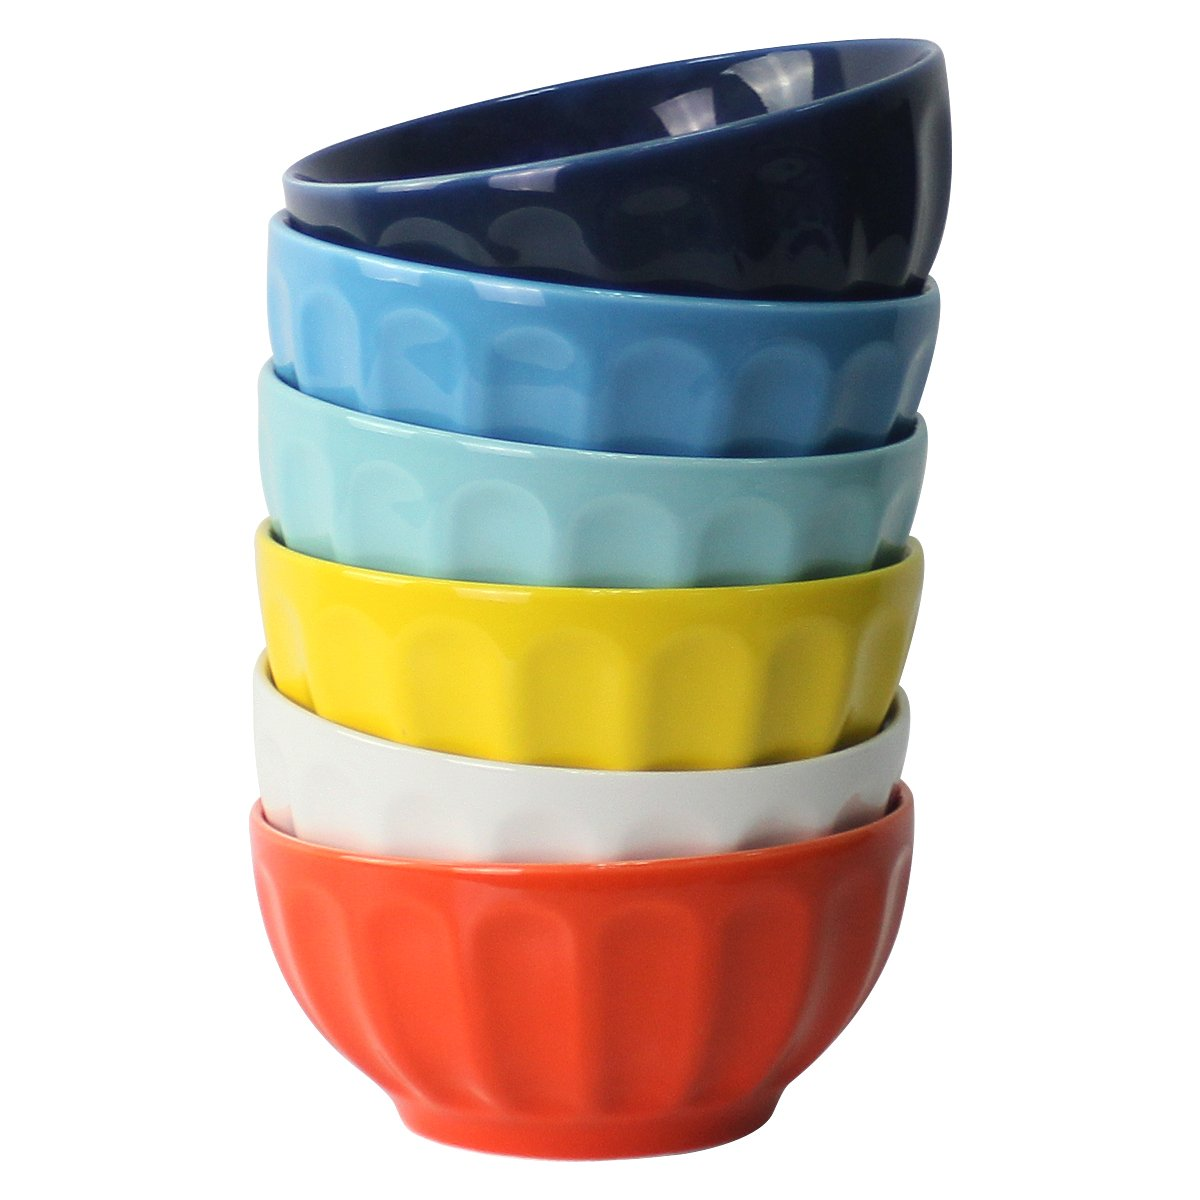 Sweese Porcelain Fluted Bowls - Set of 6 - 26oz